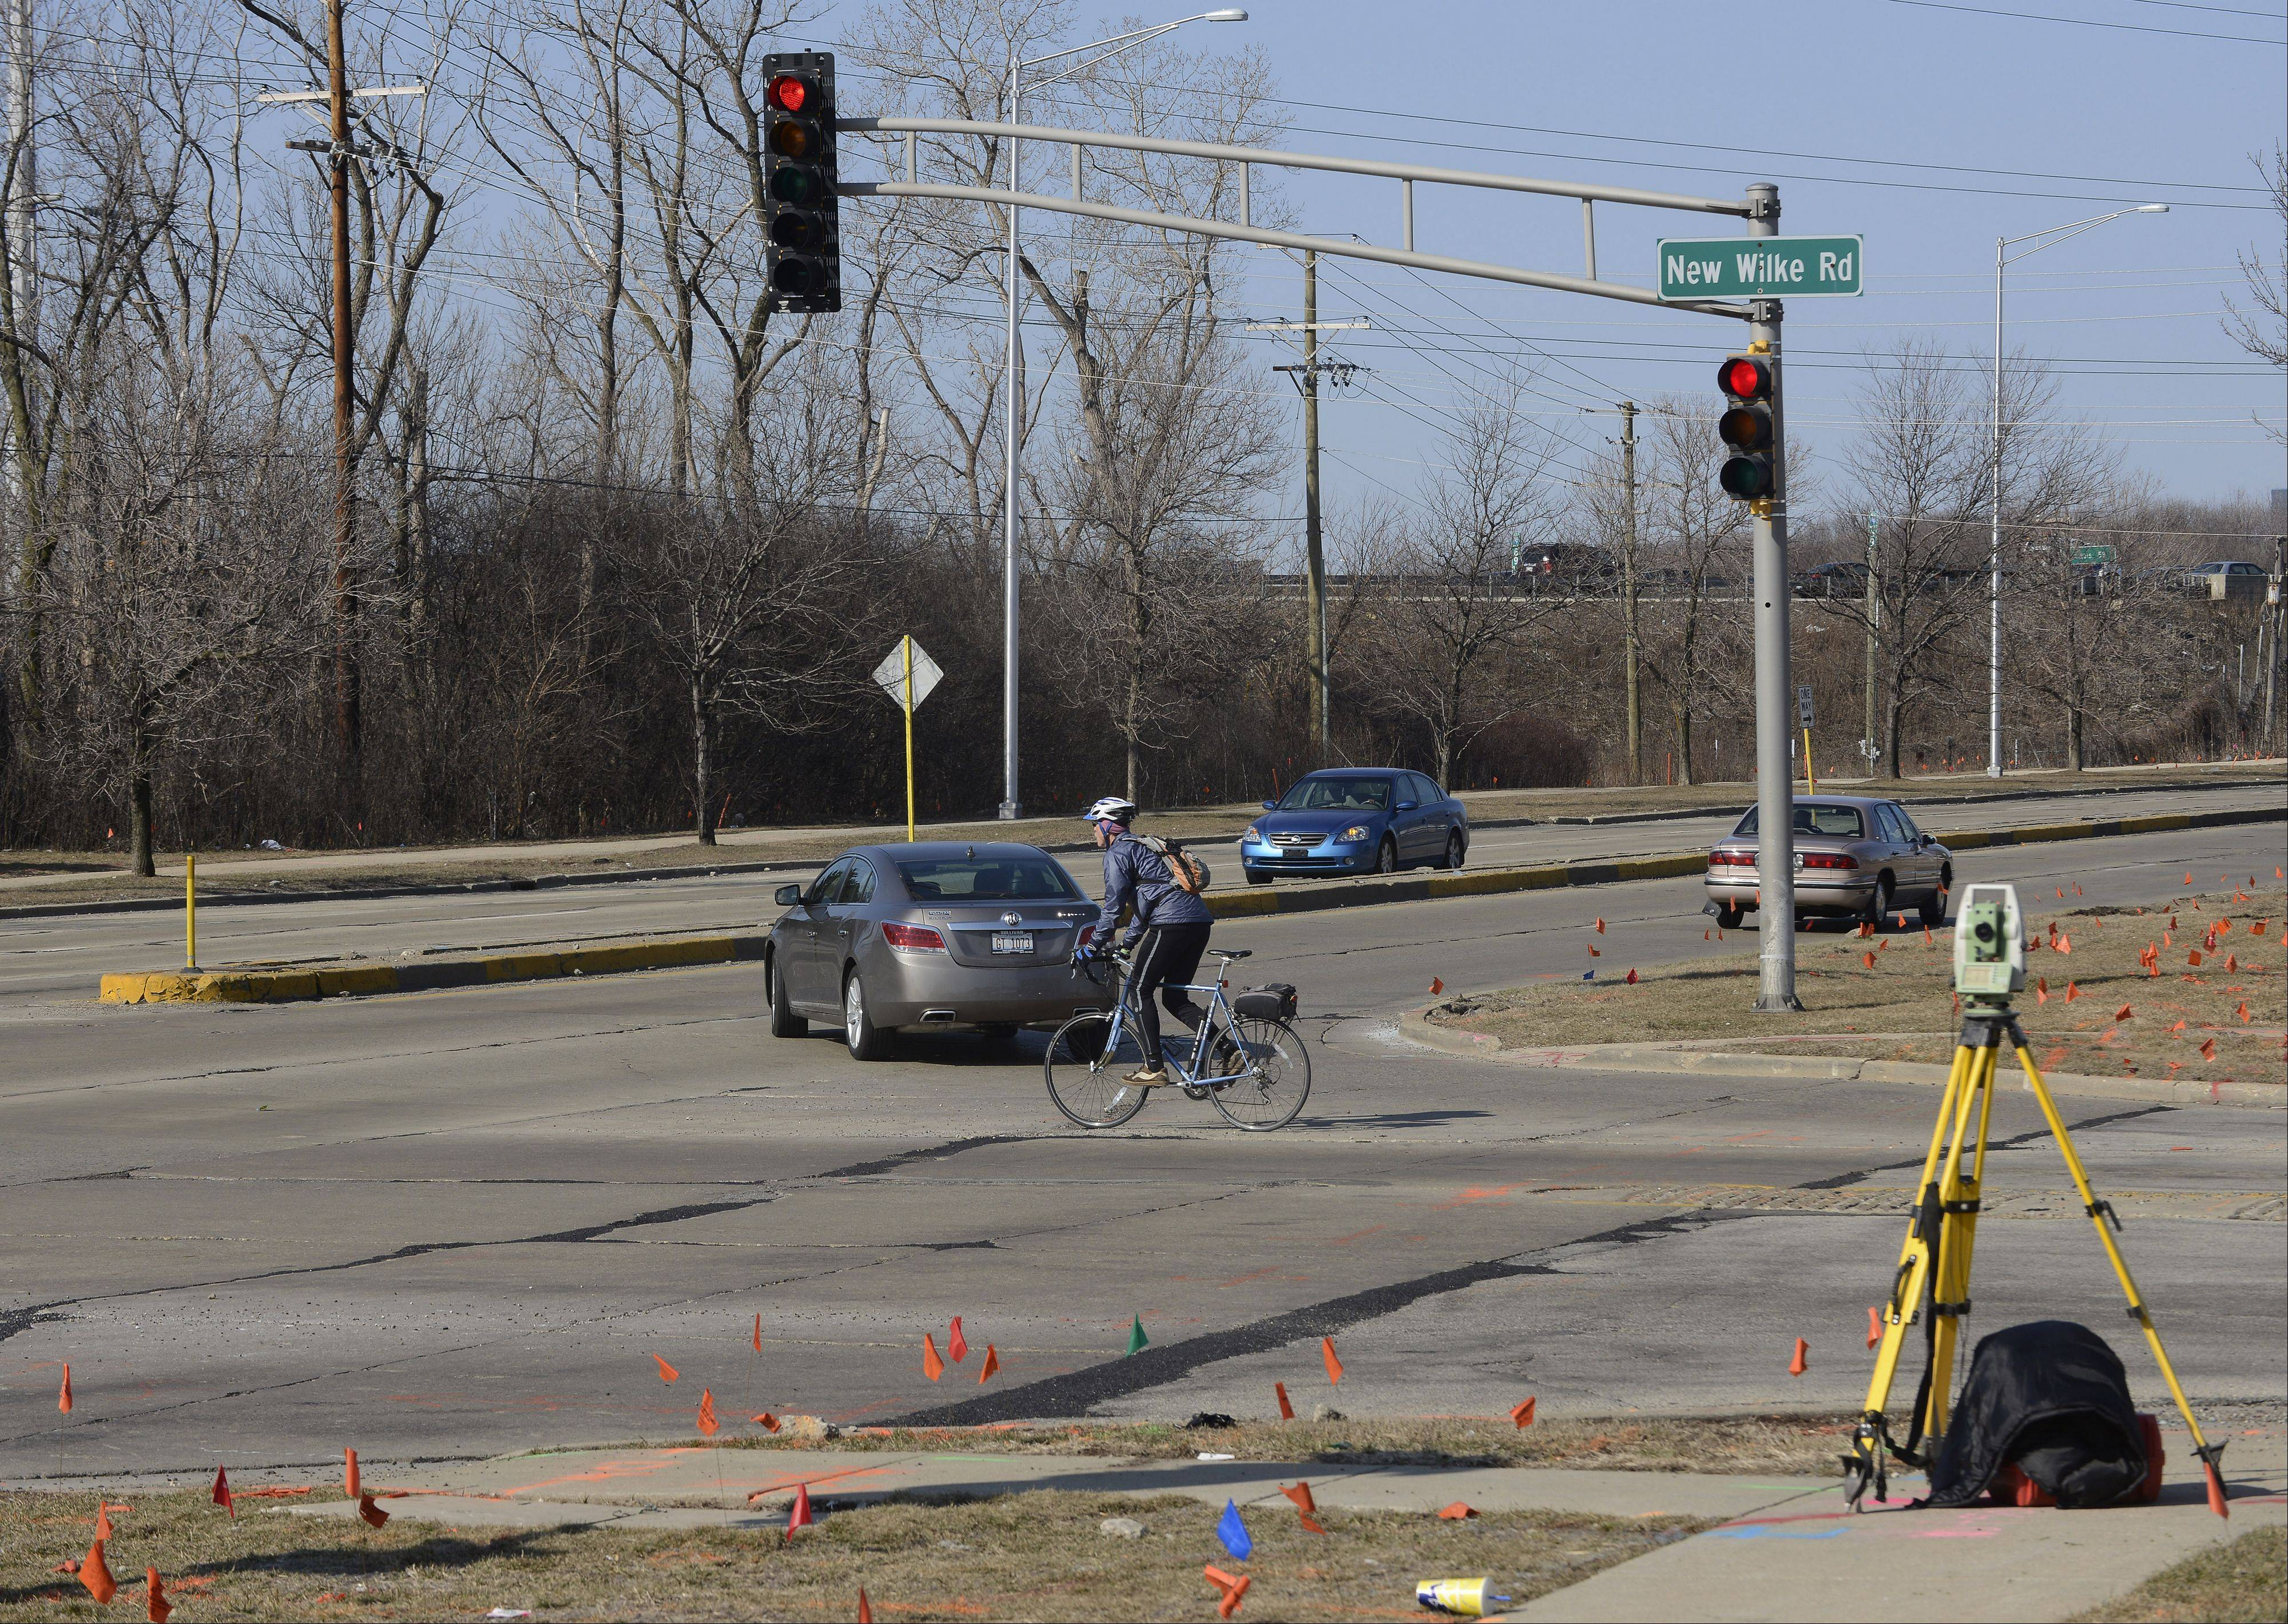 Road construction will begin this week in the area of Golf and New Wilke roads in Rolling Meadows. The project is estimated to cost $8.1 million.